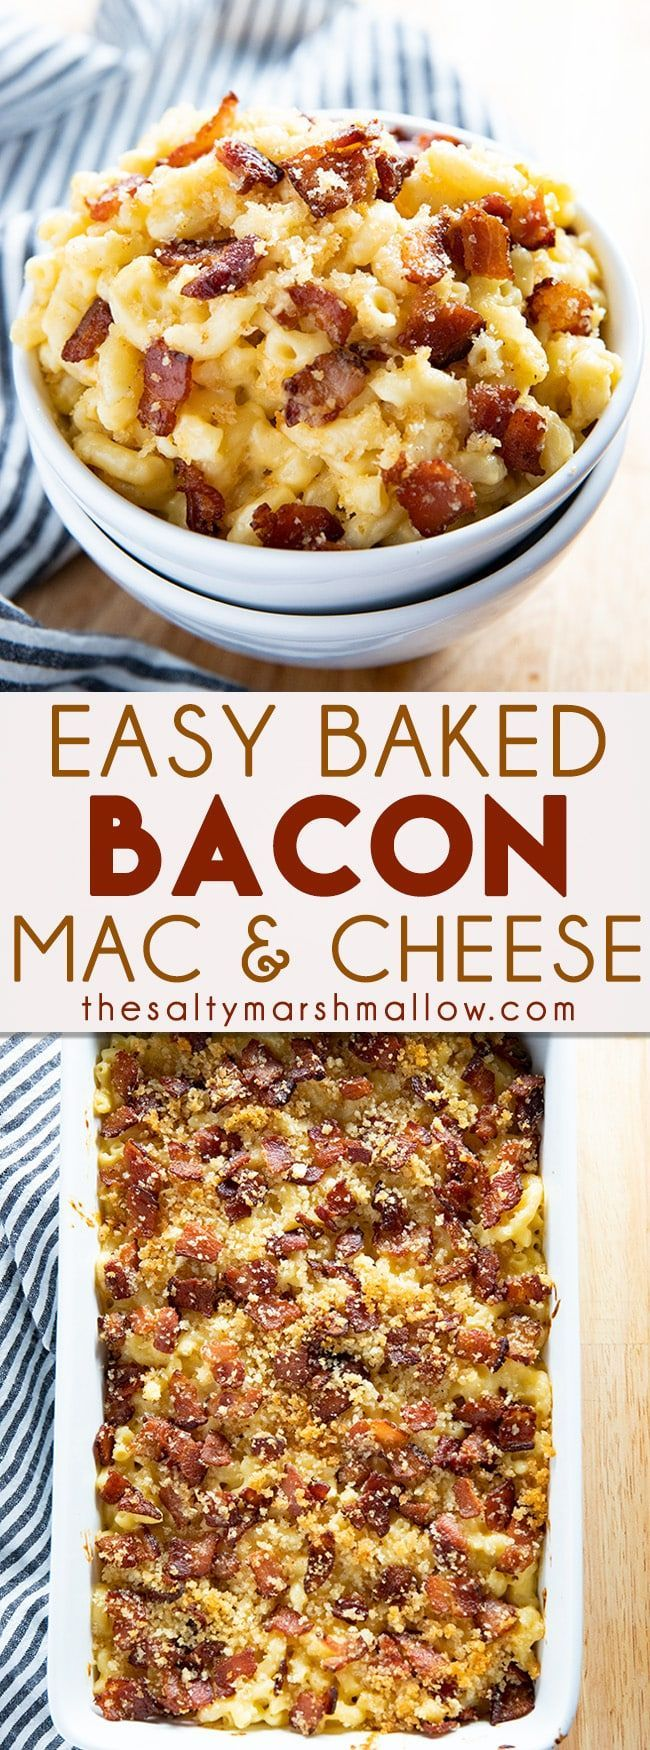 Macaroni And Cheese With Bacon Gratin Recipe Macaroni Cheese